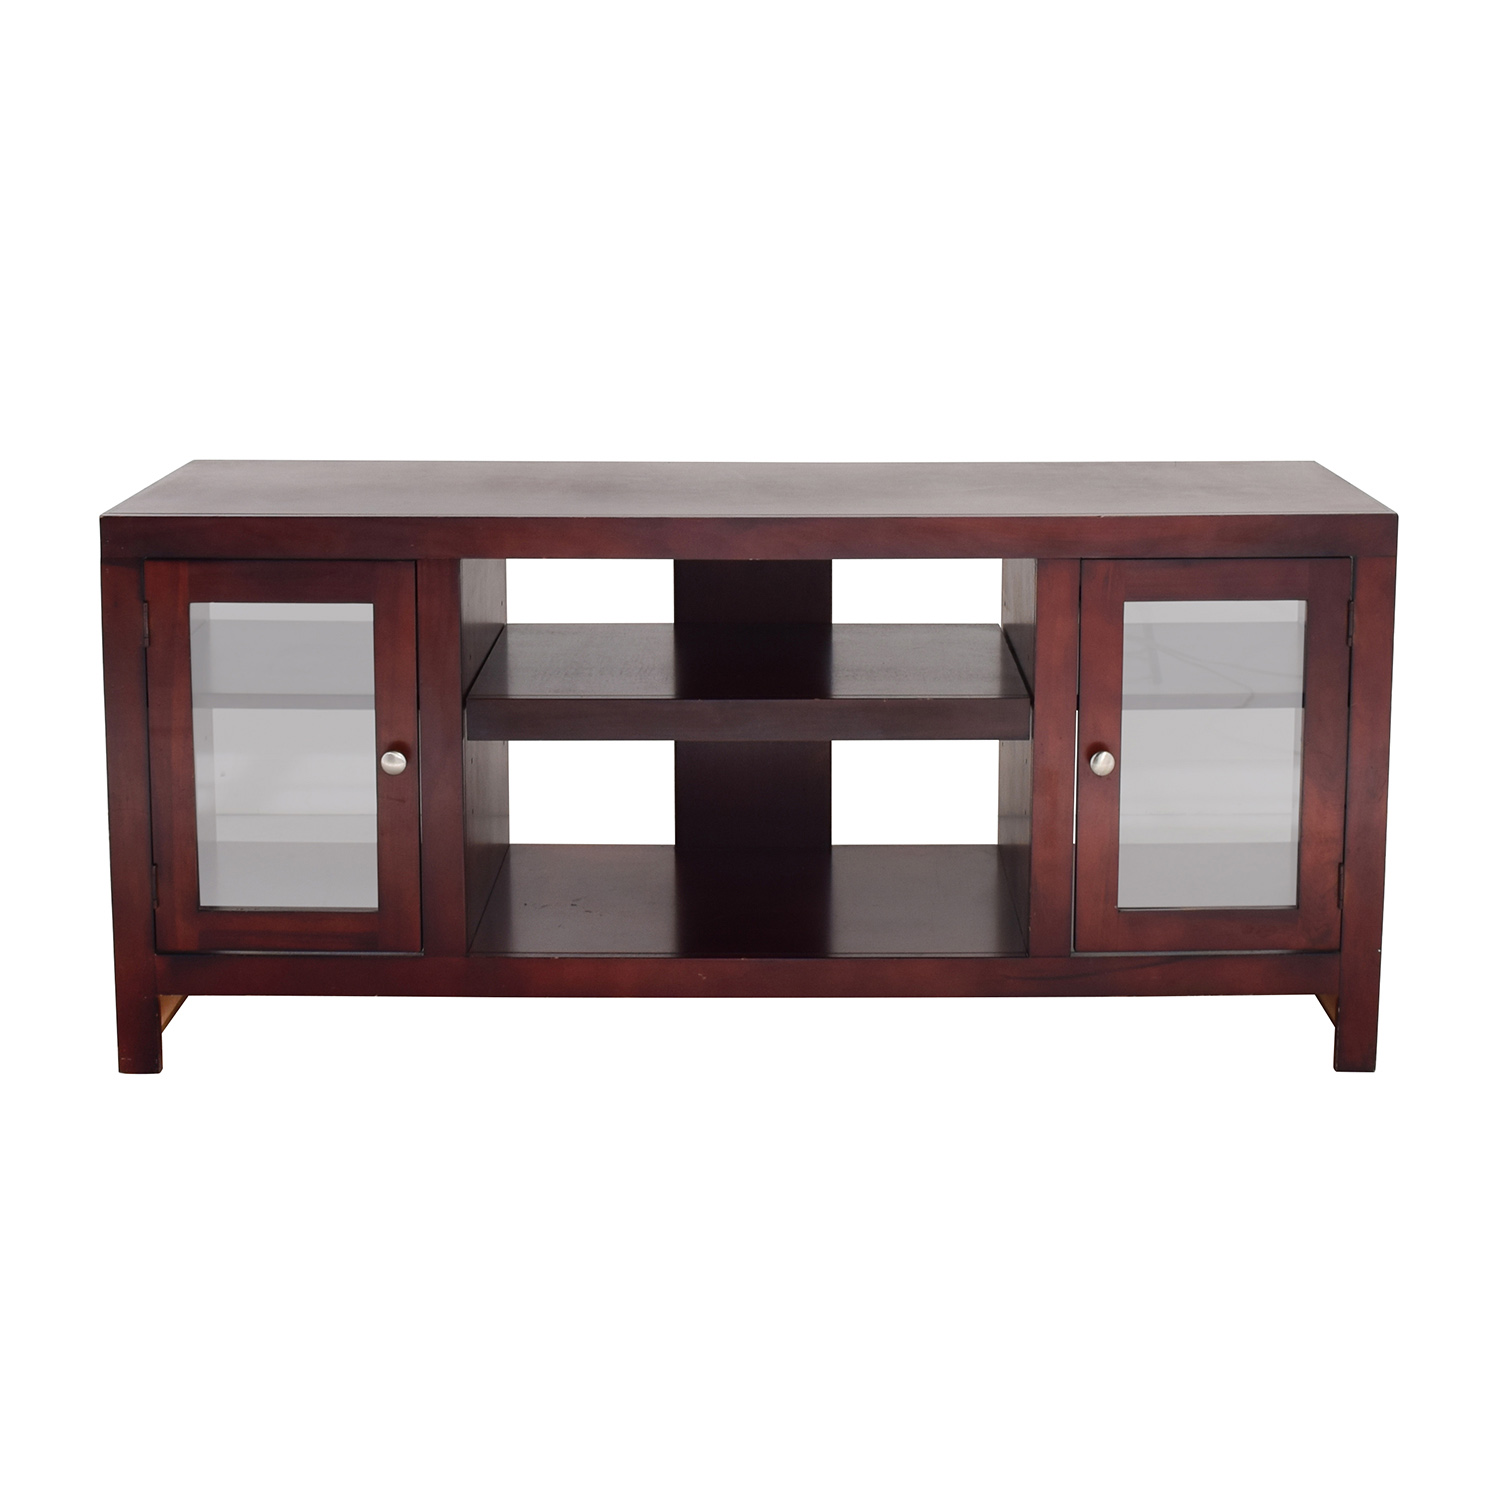 buy Crate & Barrel Wood and Glass Media Stand Crate and Barrel Media Units